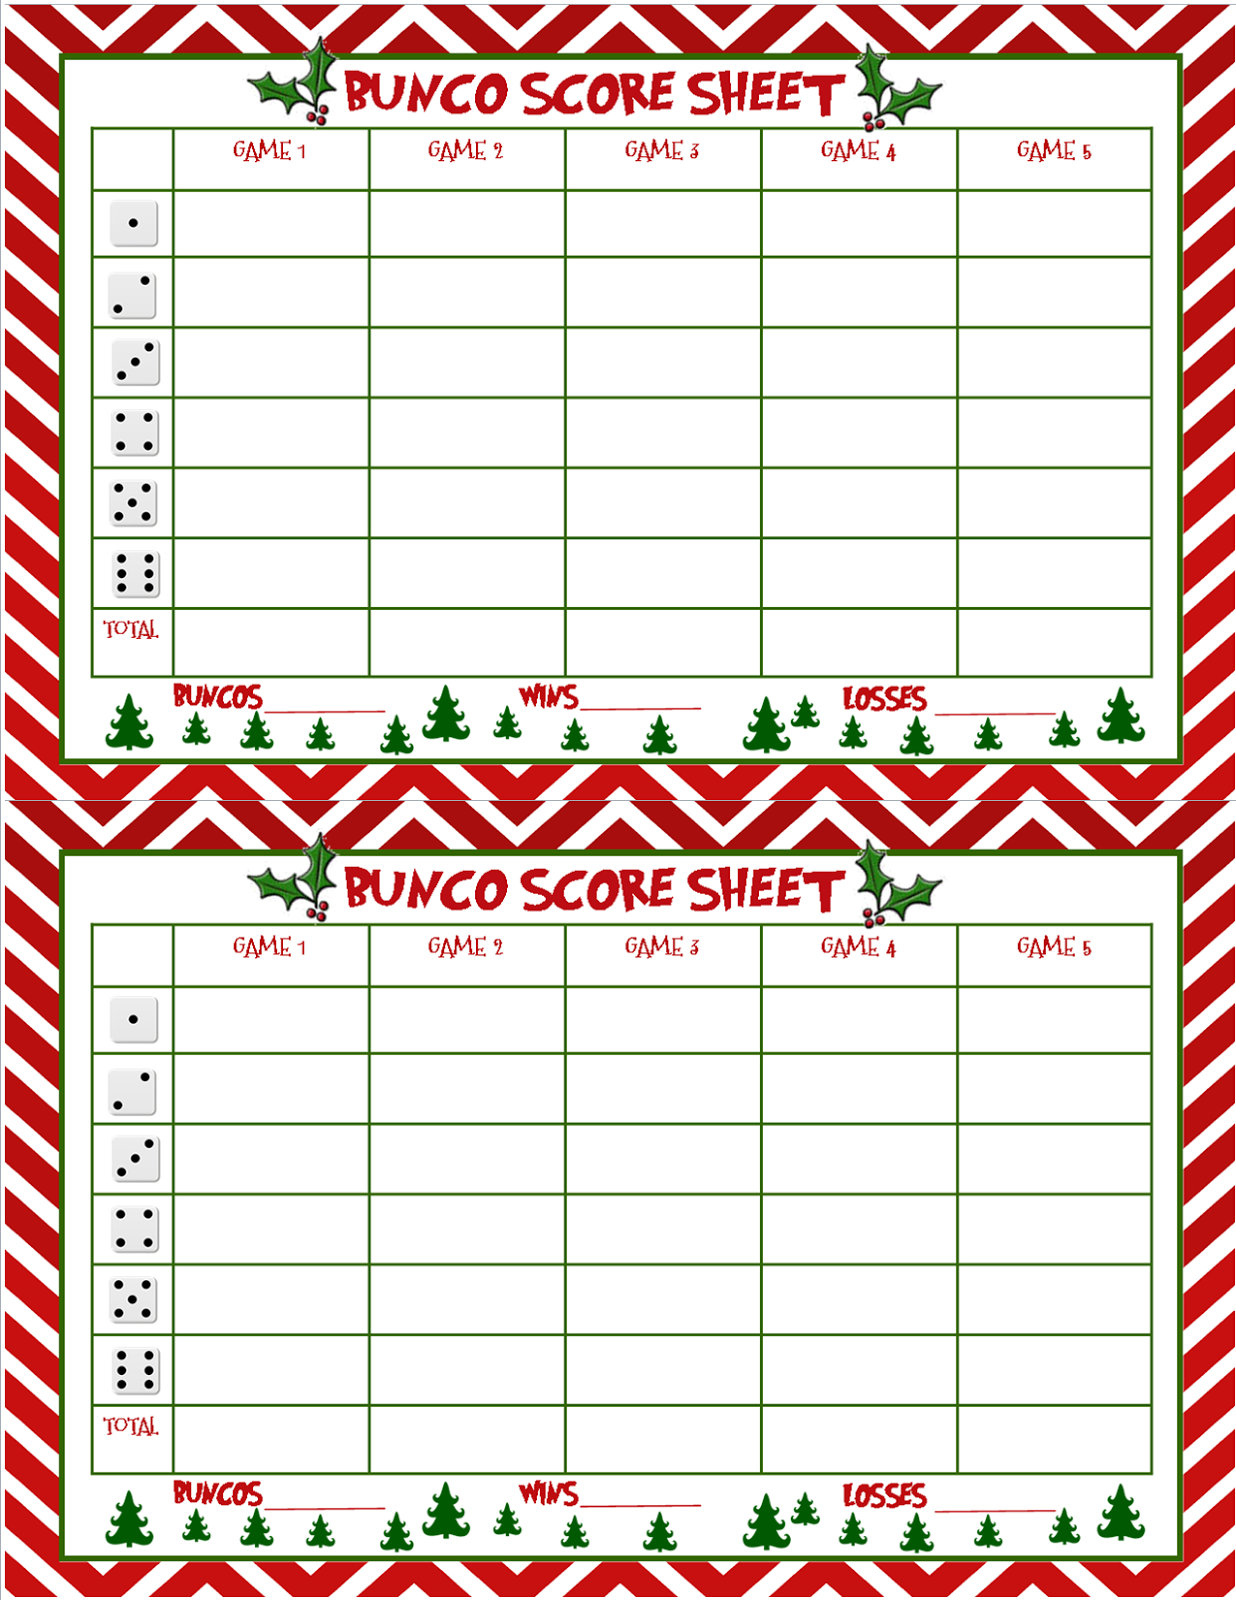 I Seemed To Have Skipped Making A Bunco Score Sheet For